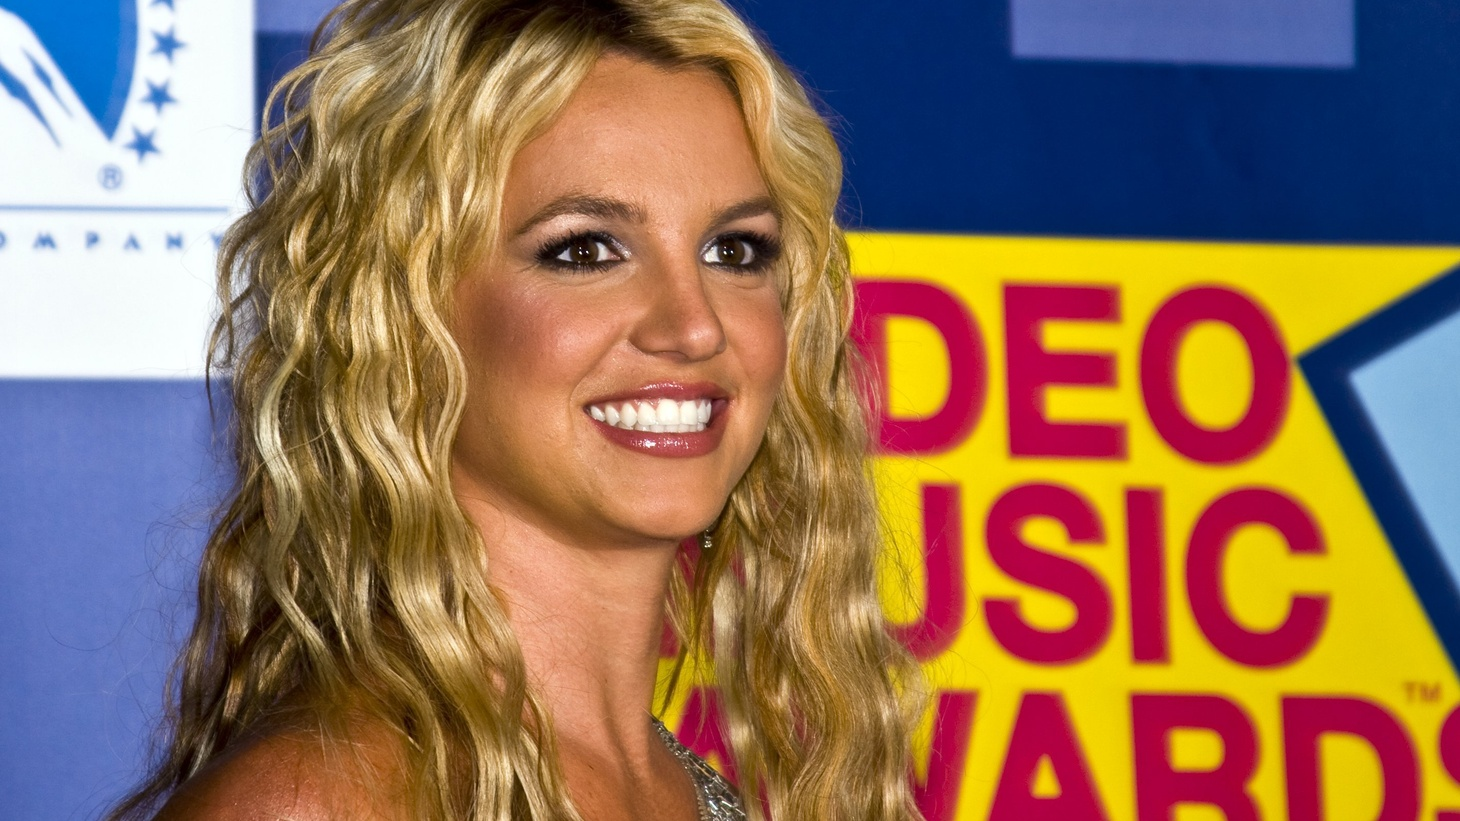 Britney Spears in the press room at the 2008 MTV Video Music Awards at Paramount Pictures Studio in Hollywood, California.